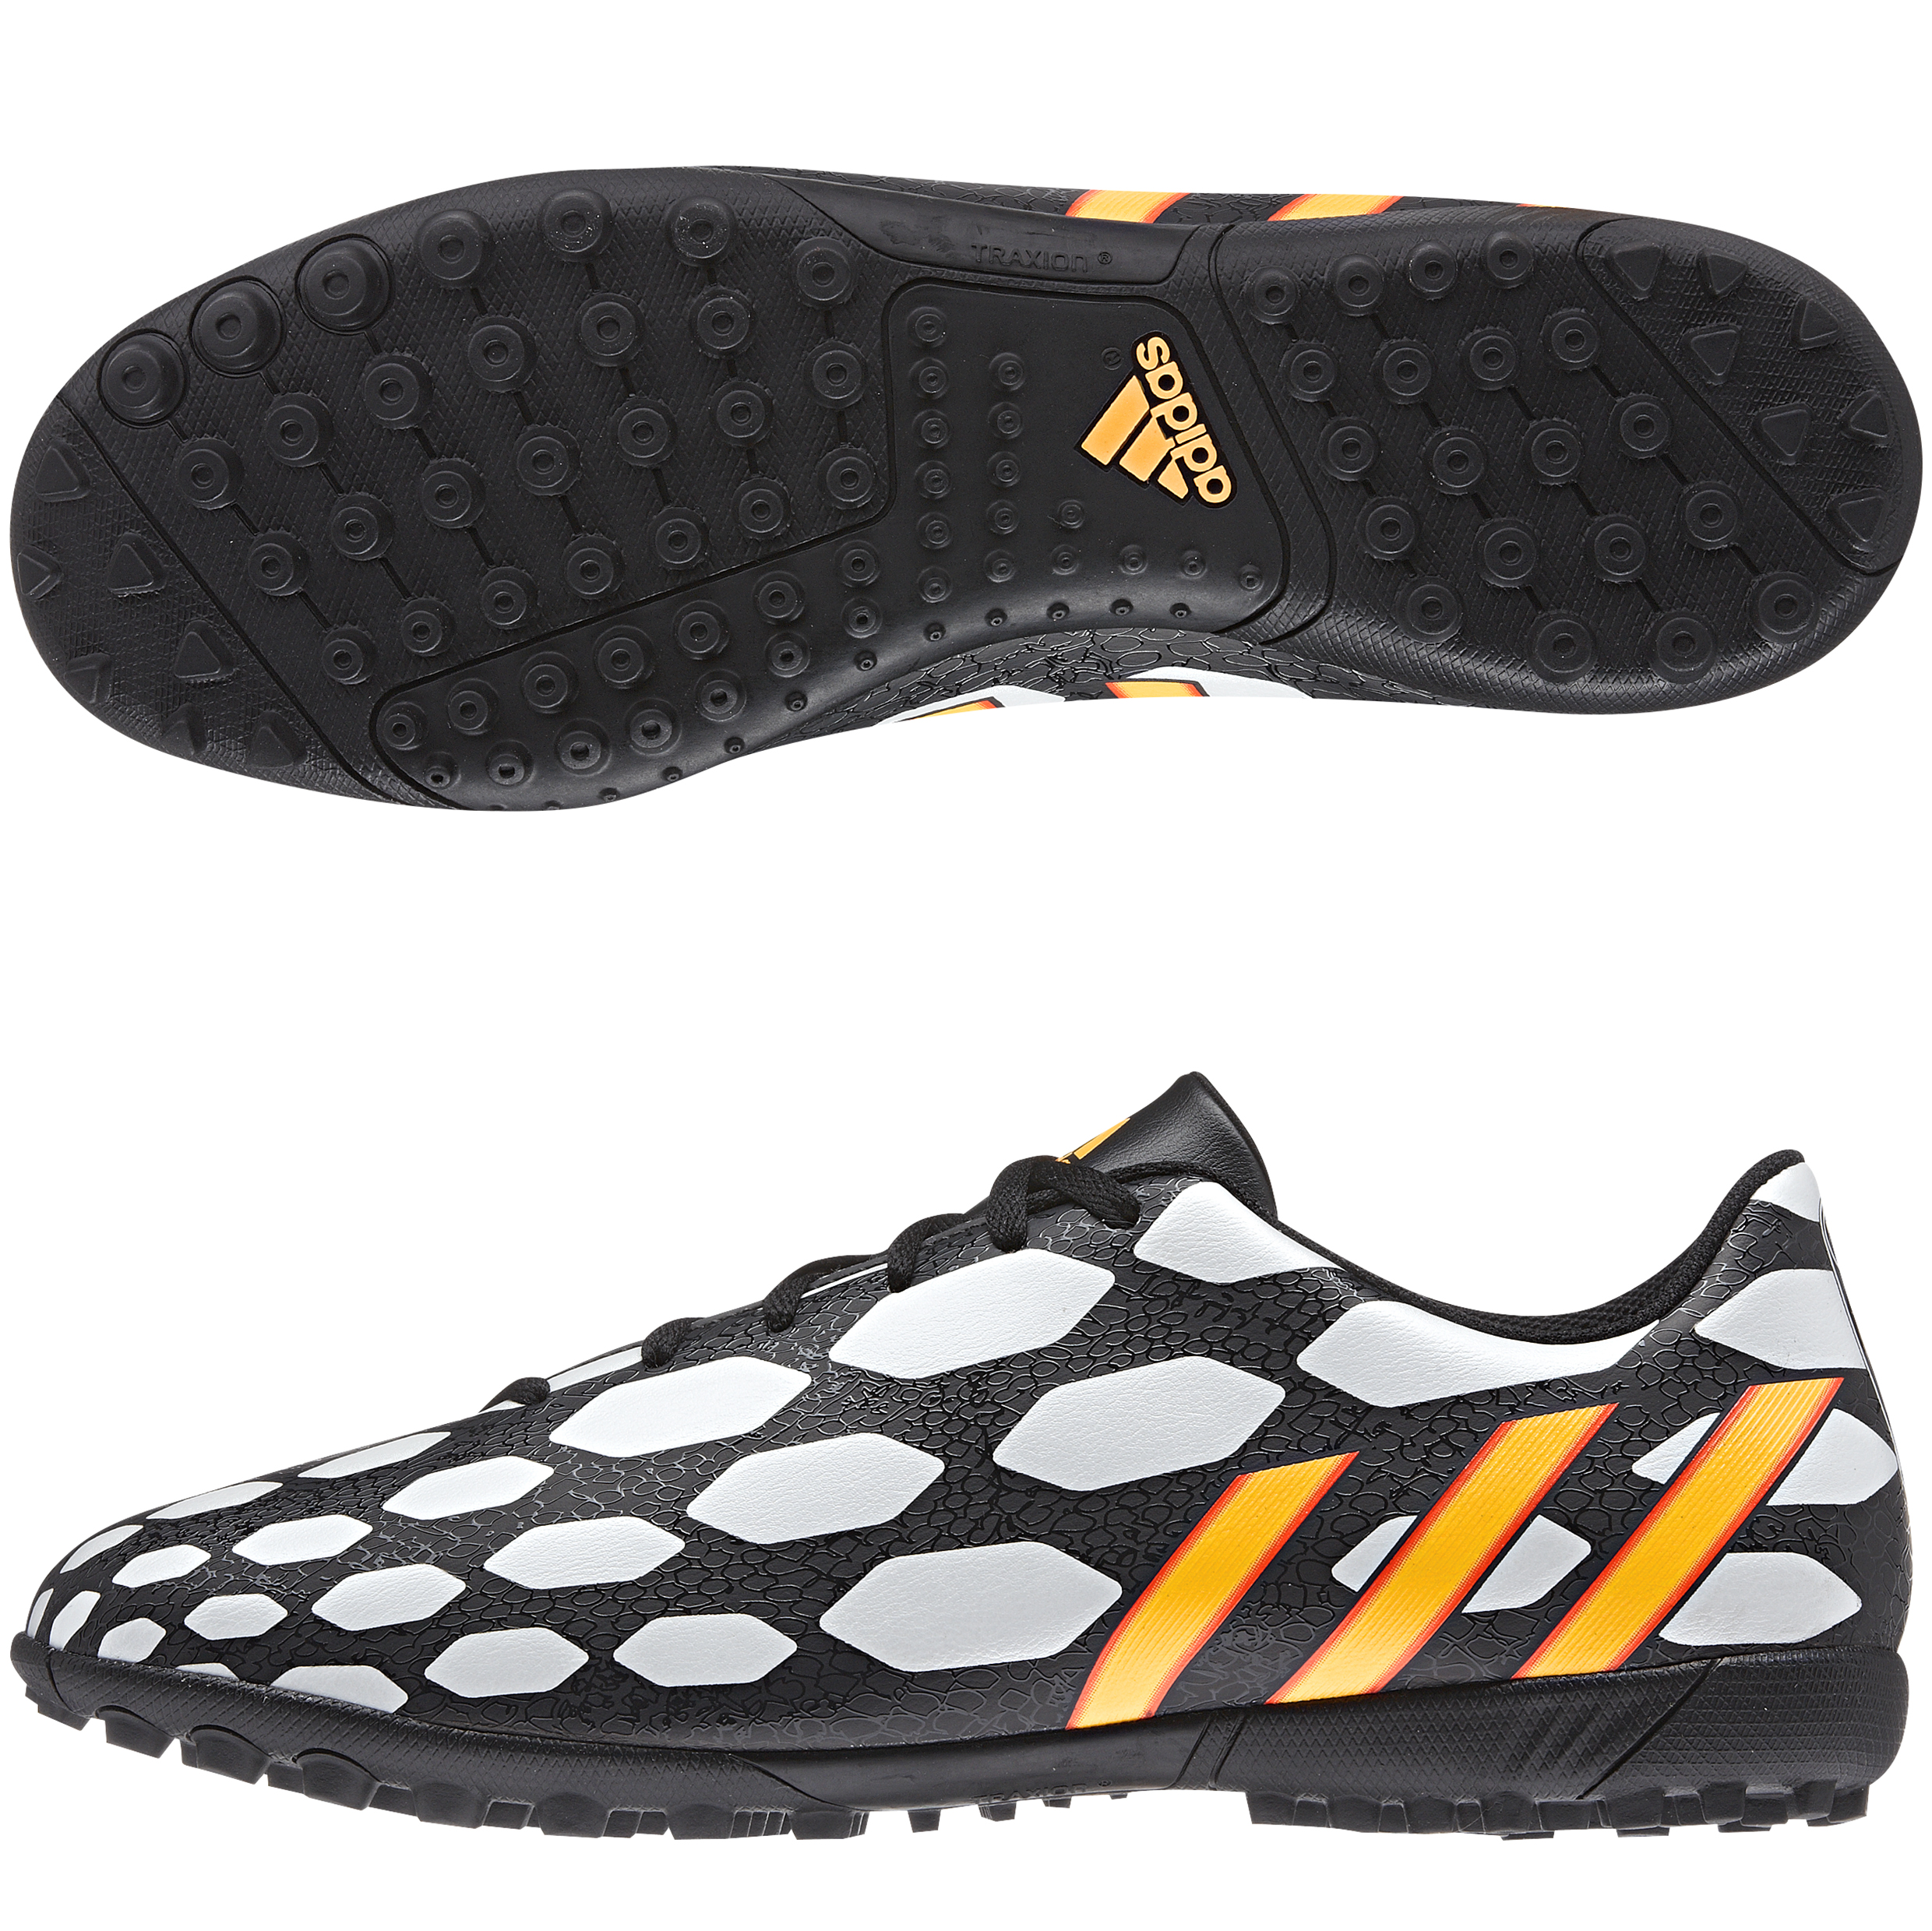 Adidas Predito LZ World Cup 2014 Astroturf Trainers Black